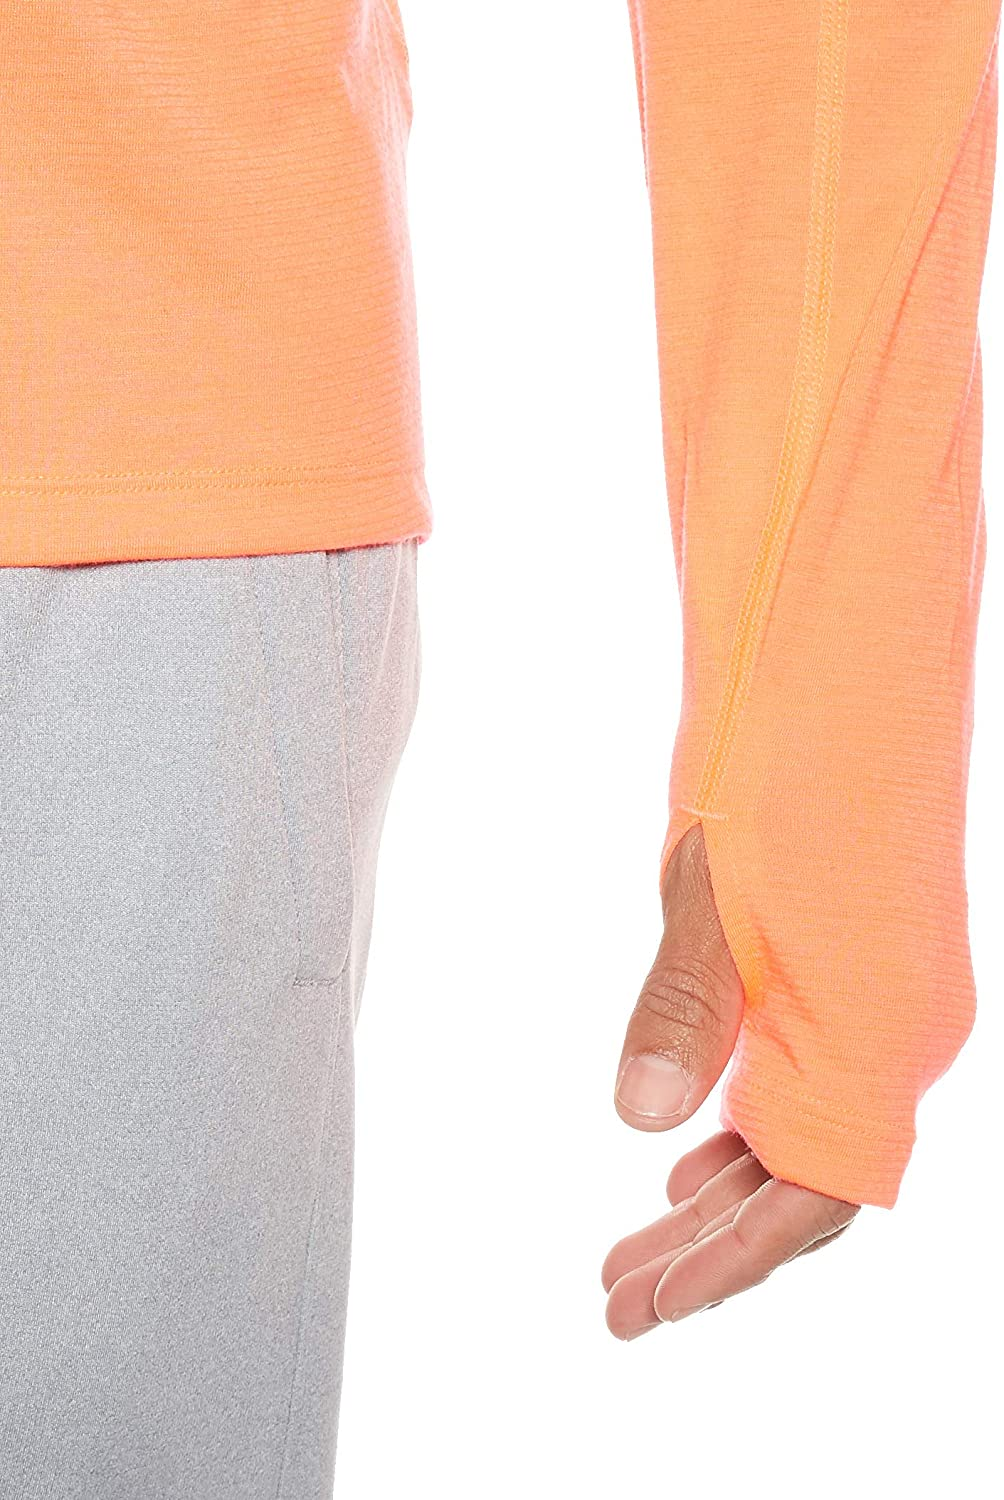 Zip Up Top with Modern Fabric Under Armour Mens Streaker 2.0 Half Zip Long Sleeve Warm Up Top for Running